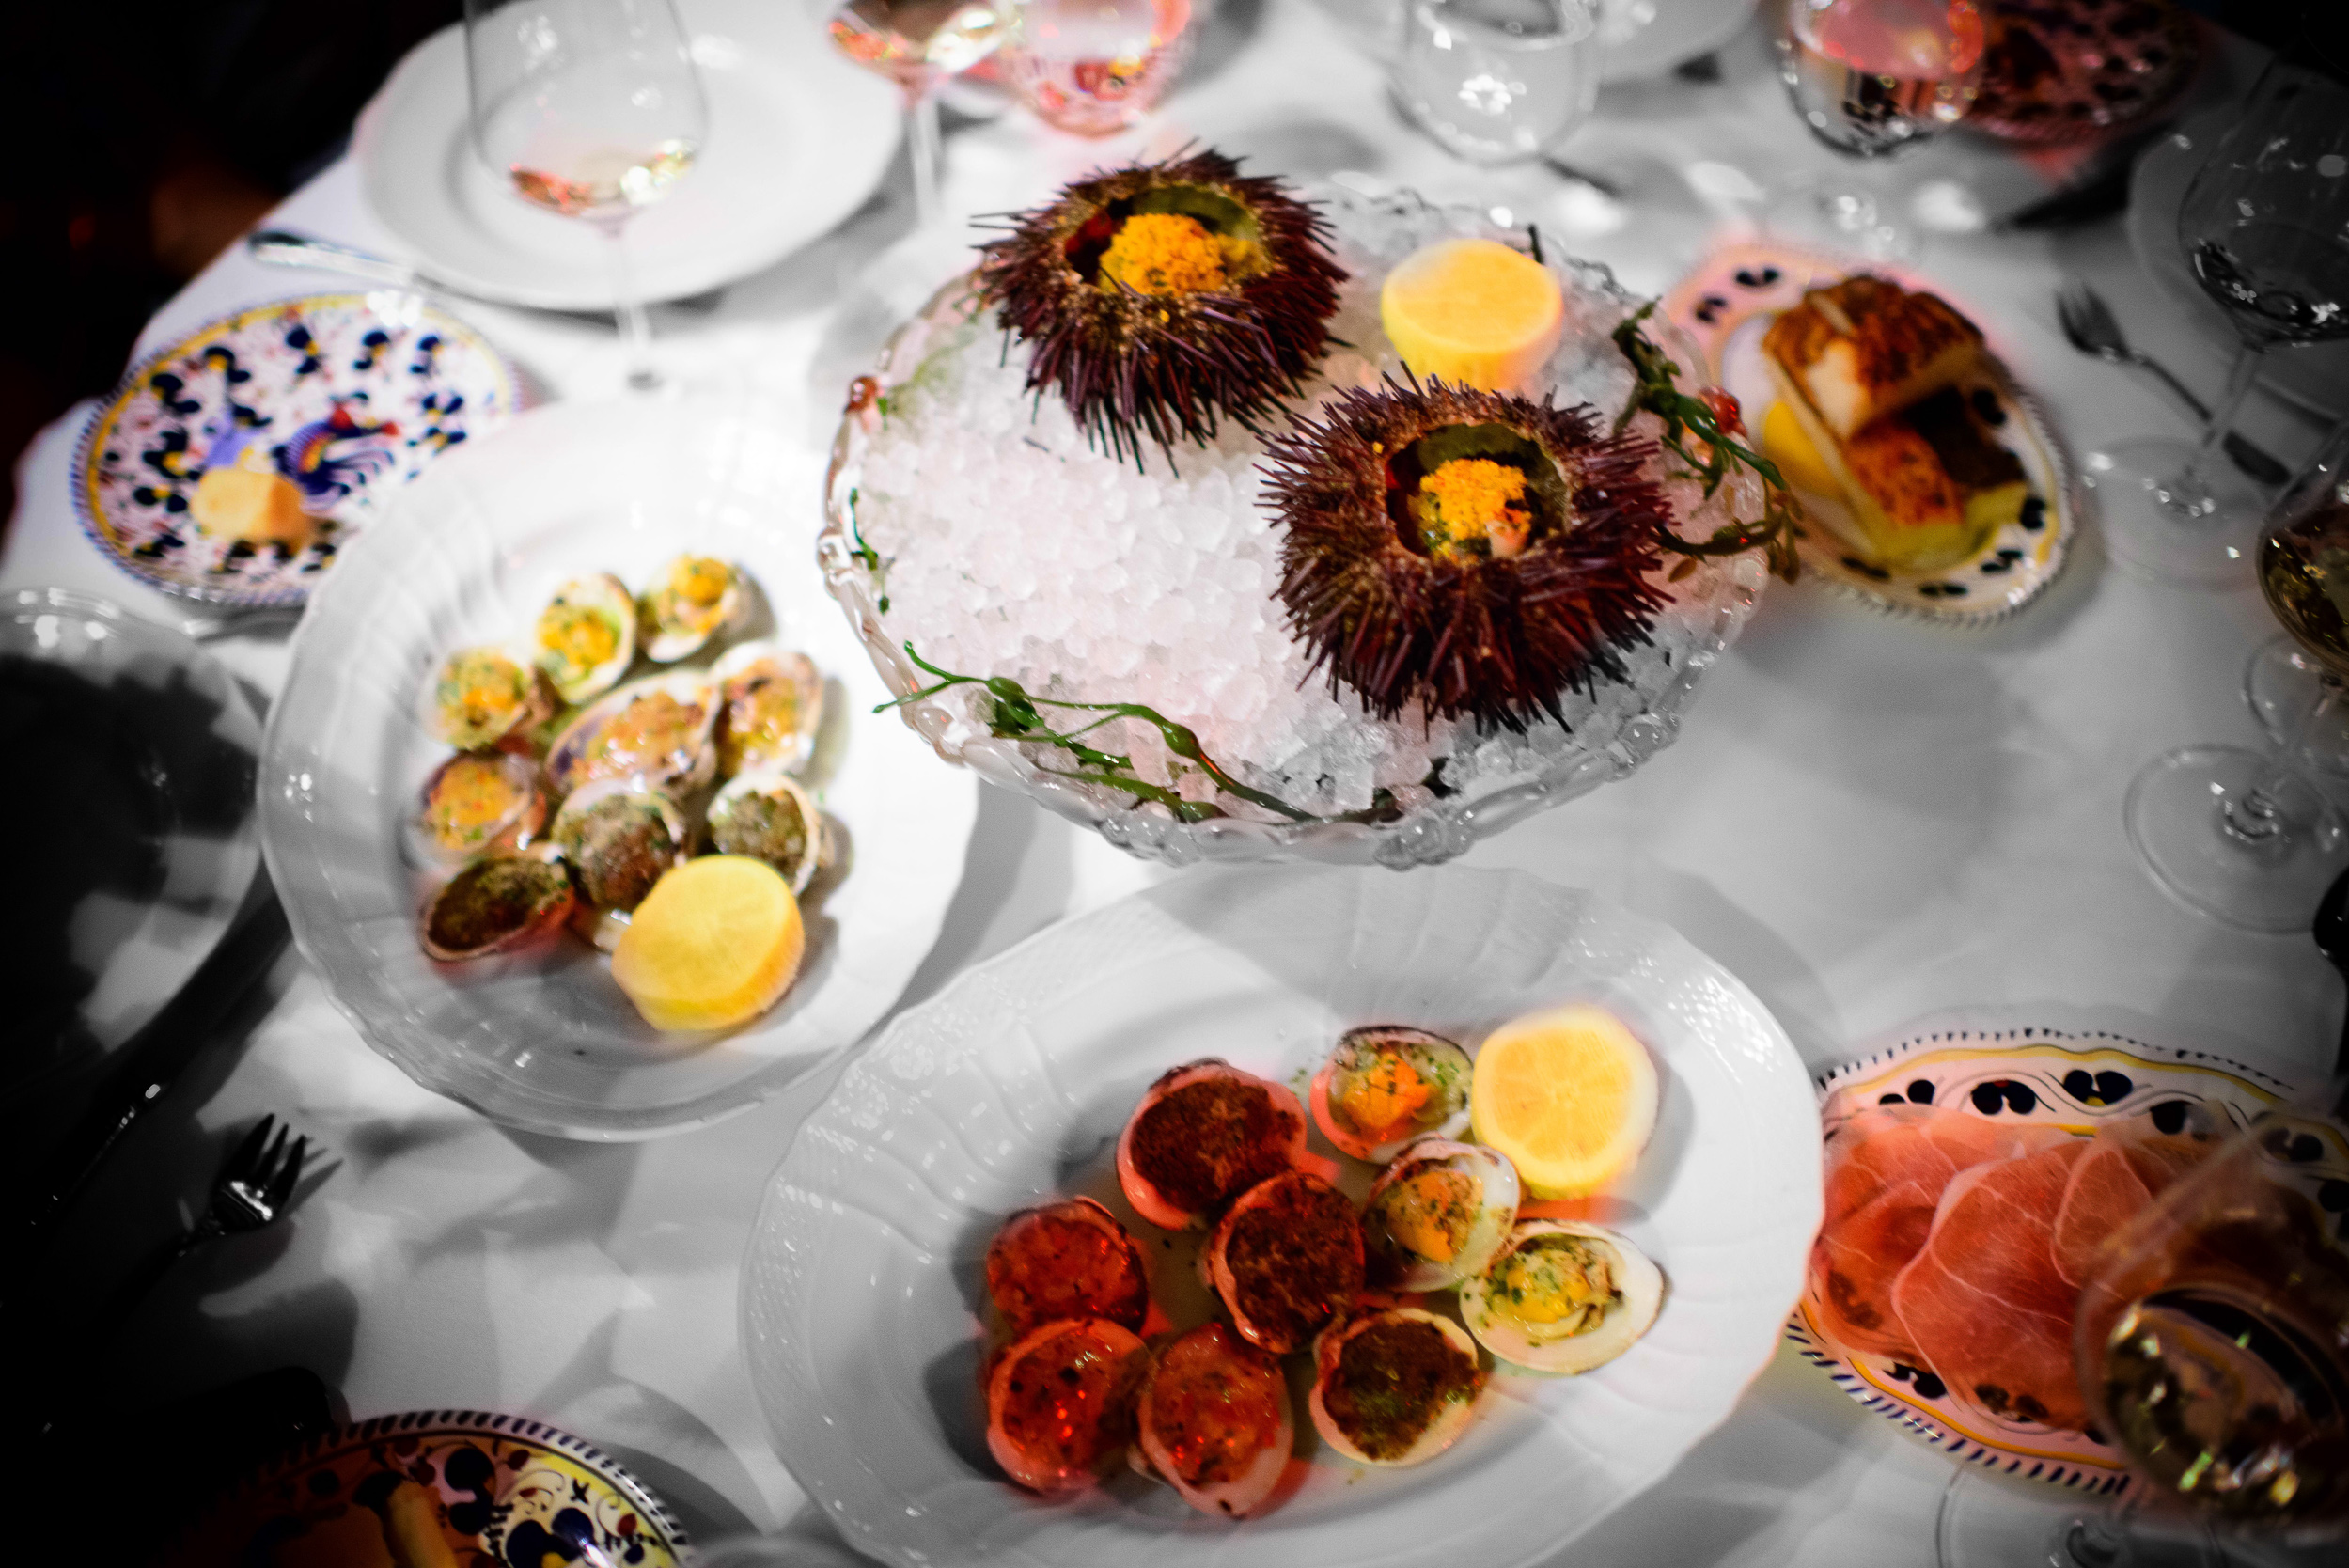 Assorted baked clams, sea urchin with spicy bread crumbs